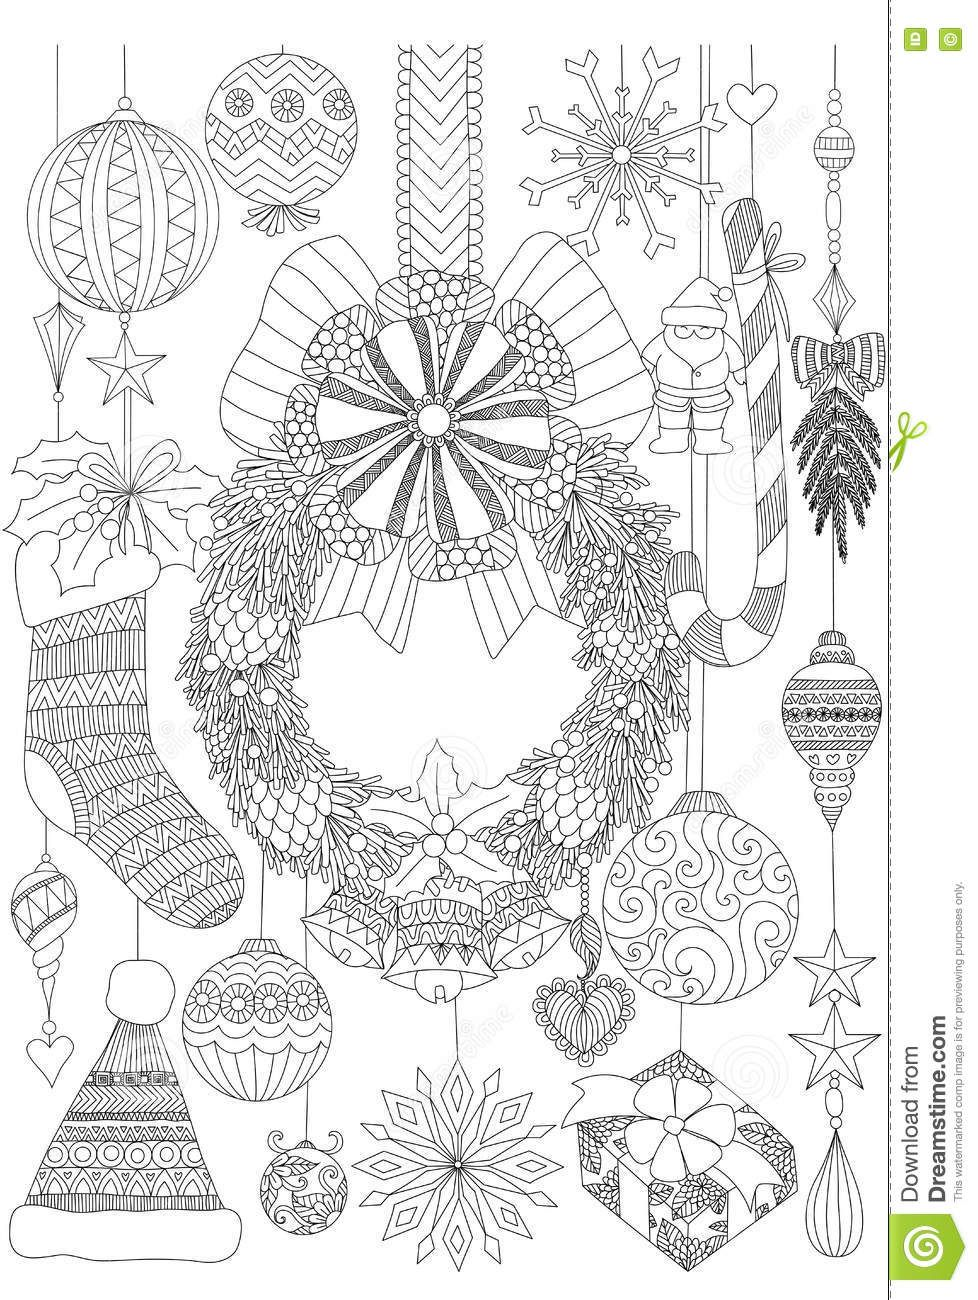 Doodles About Christmas Decorative Stuffs For Adult Coloring Book Pages And Card Invitation Stock Vector